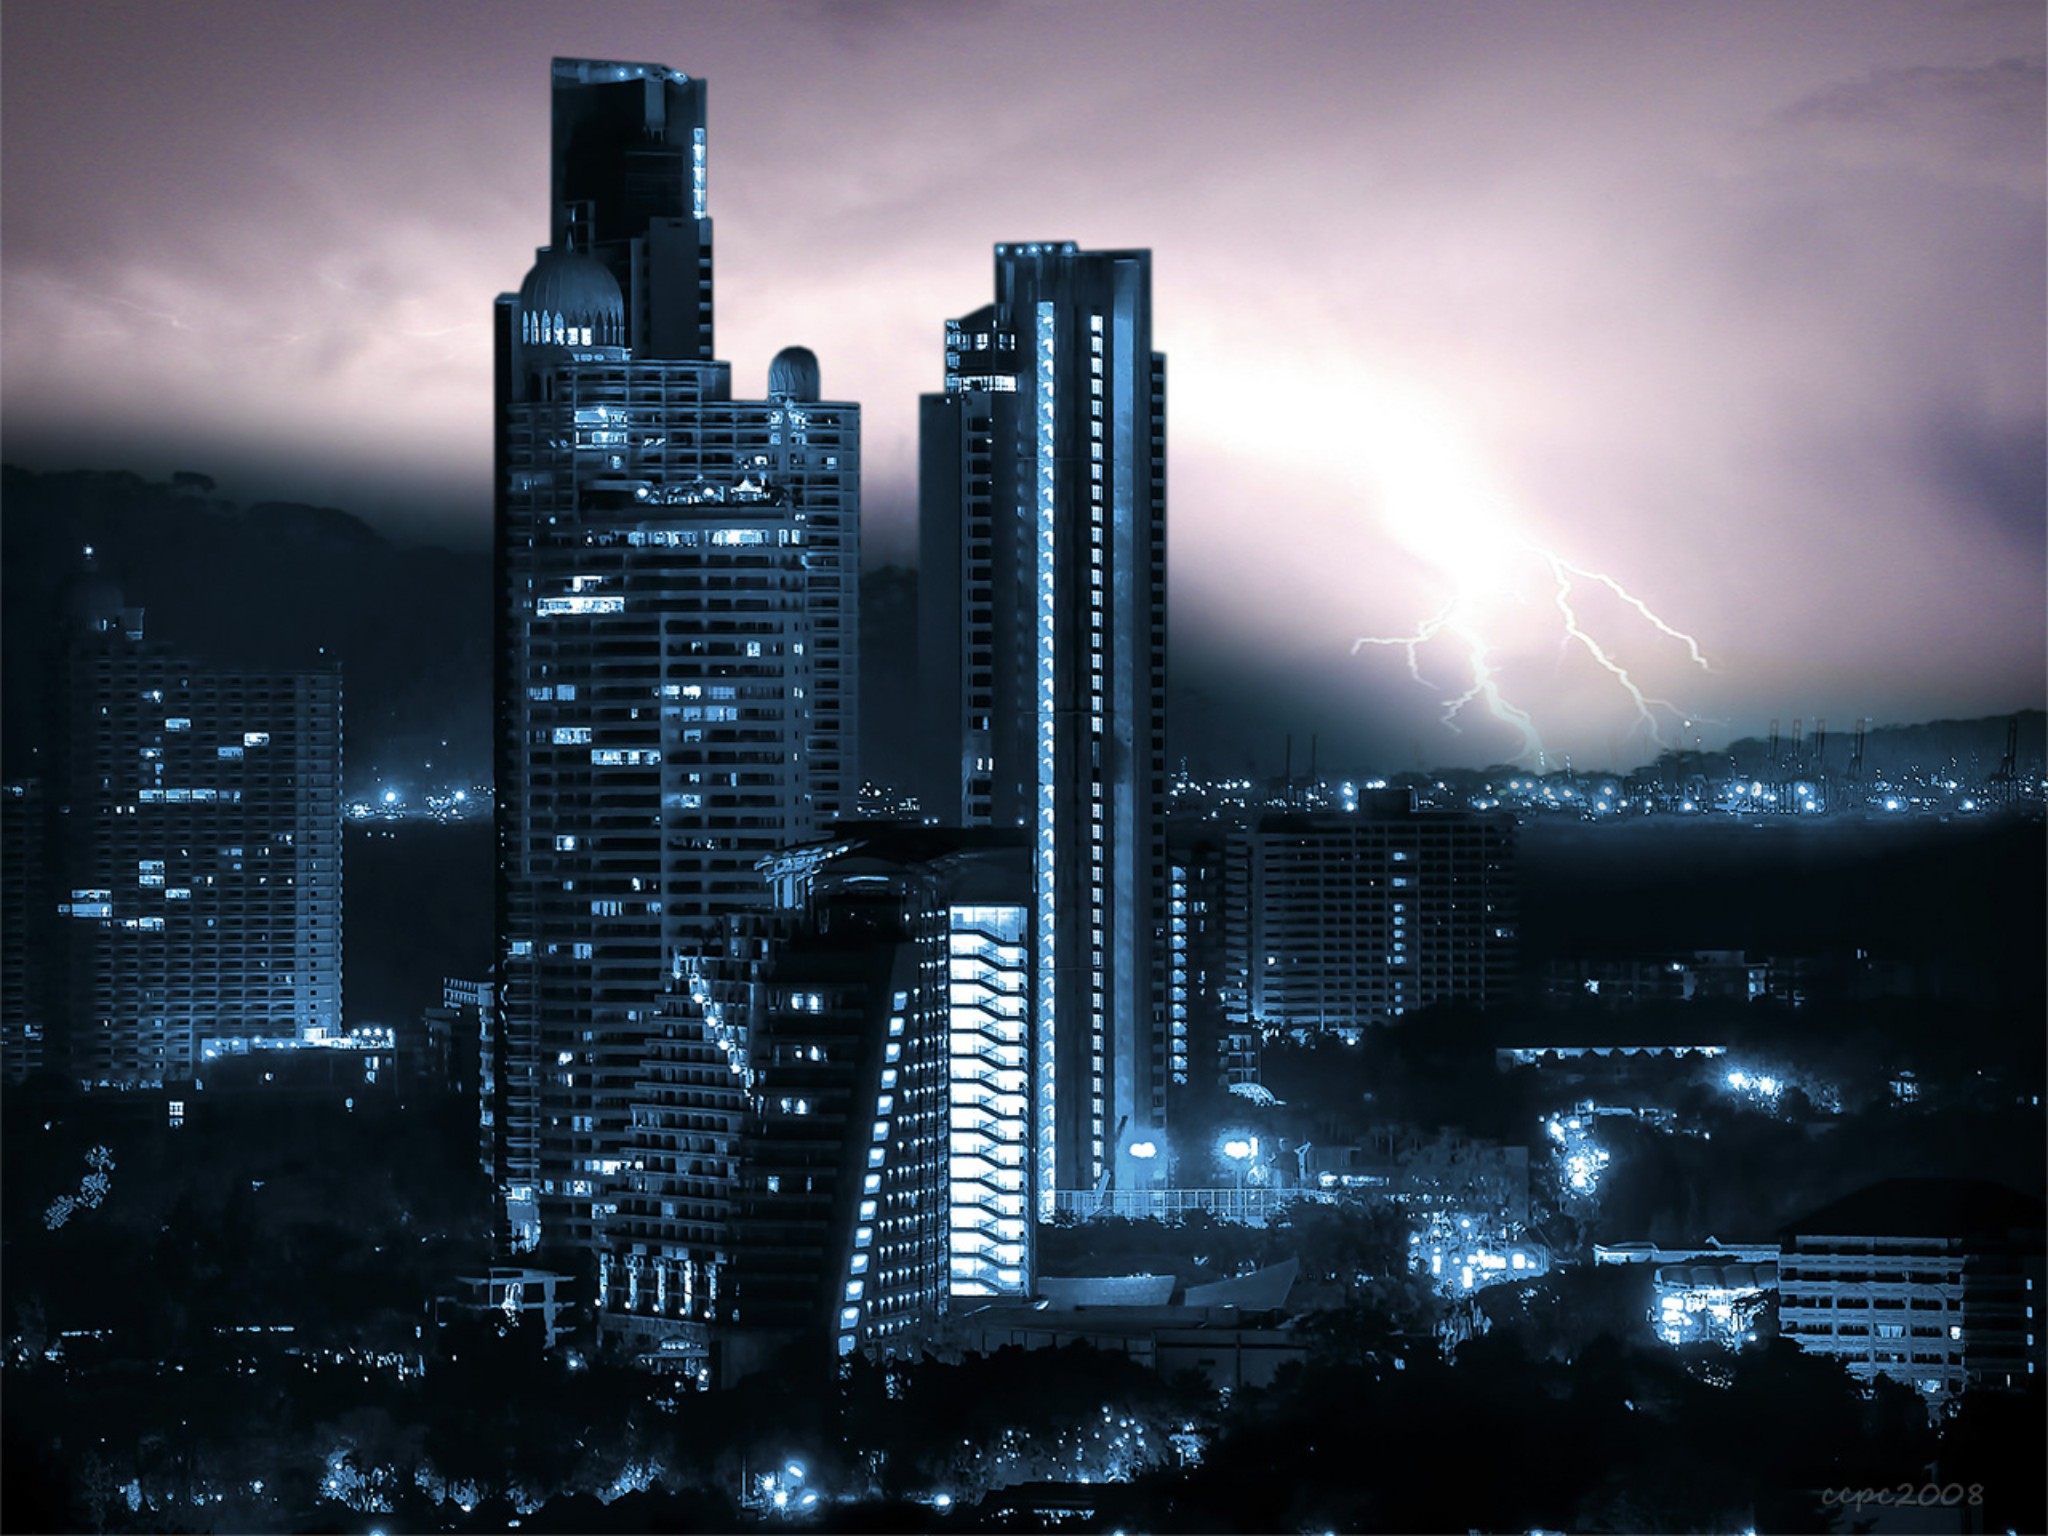 Photo: Stormy night at the dark city. My contribution to #saturdaynightlights curated by +Dirk Heindoerfer